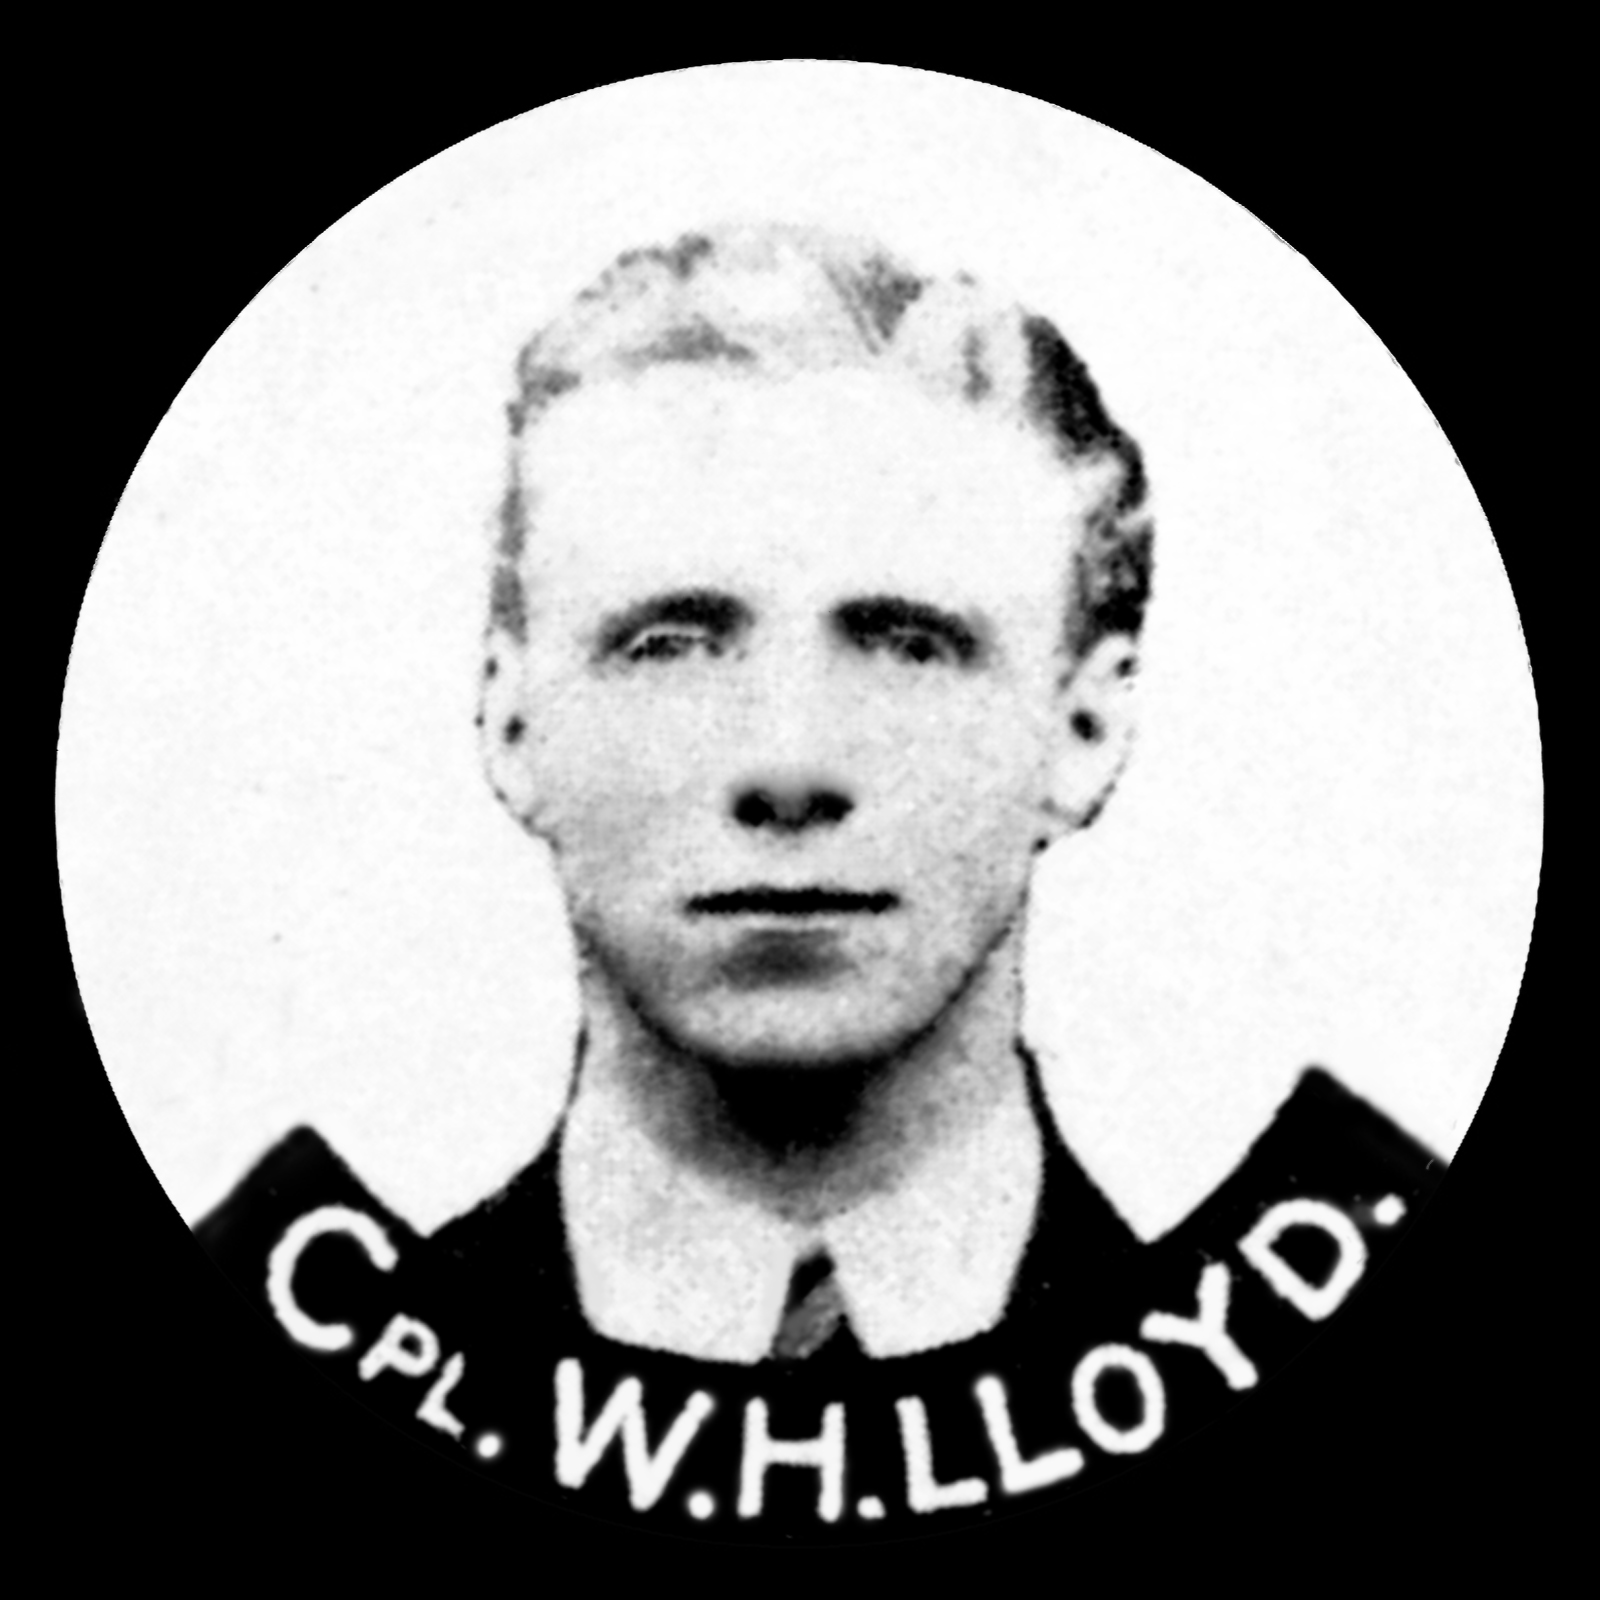 LLOYD William Henry